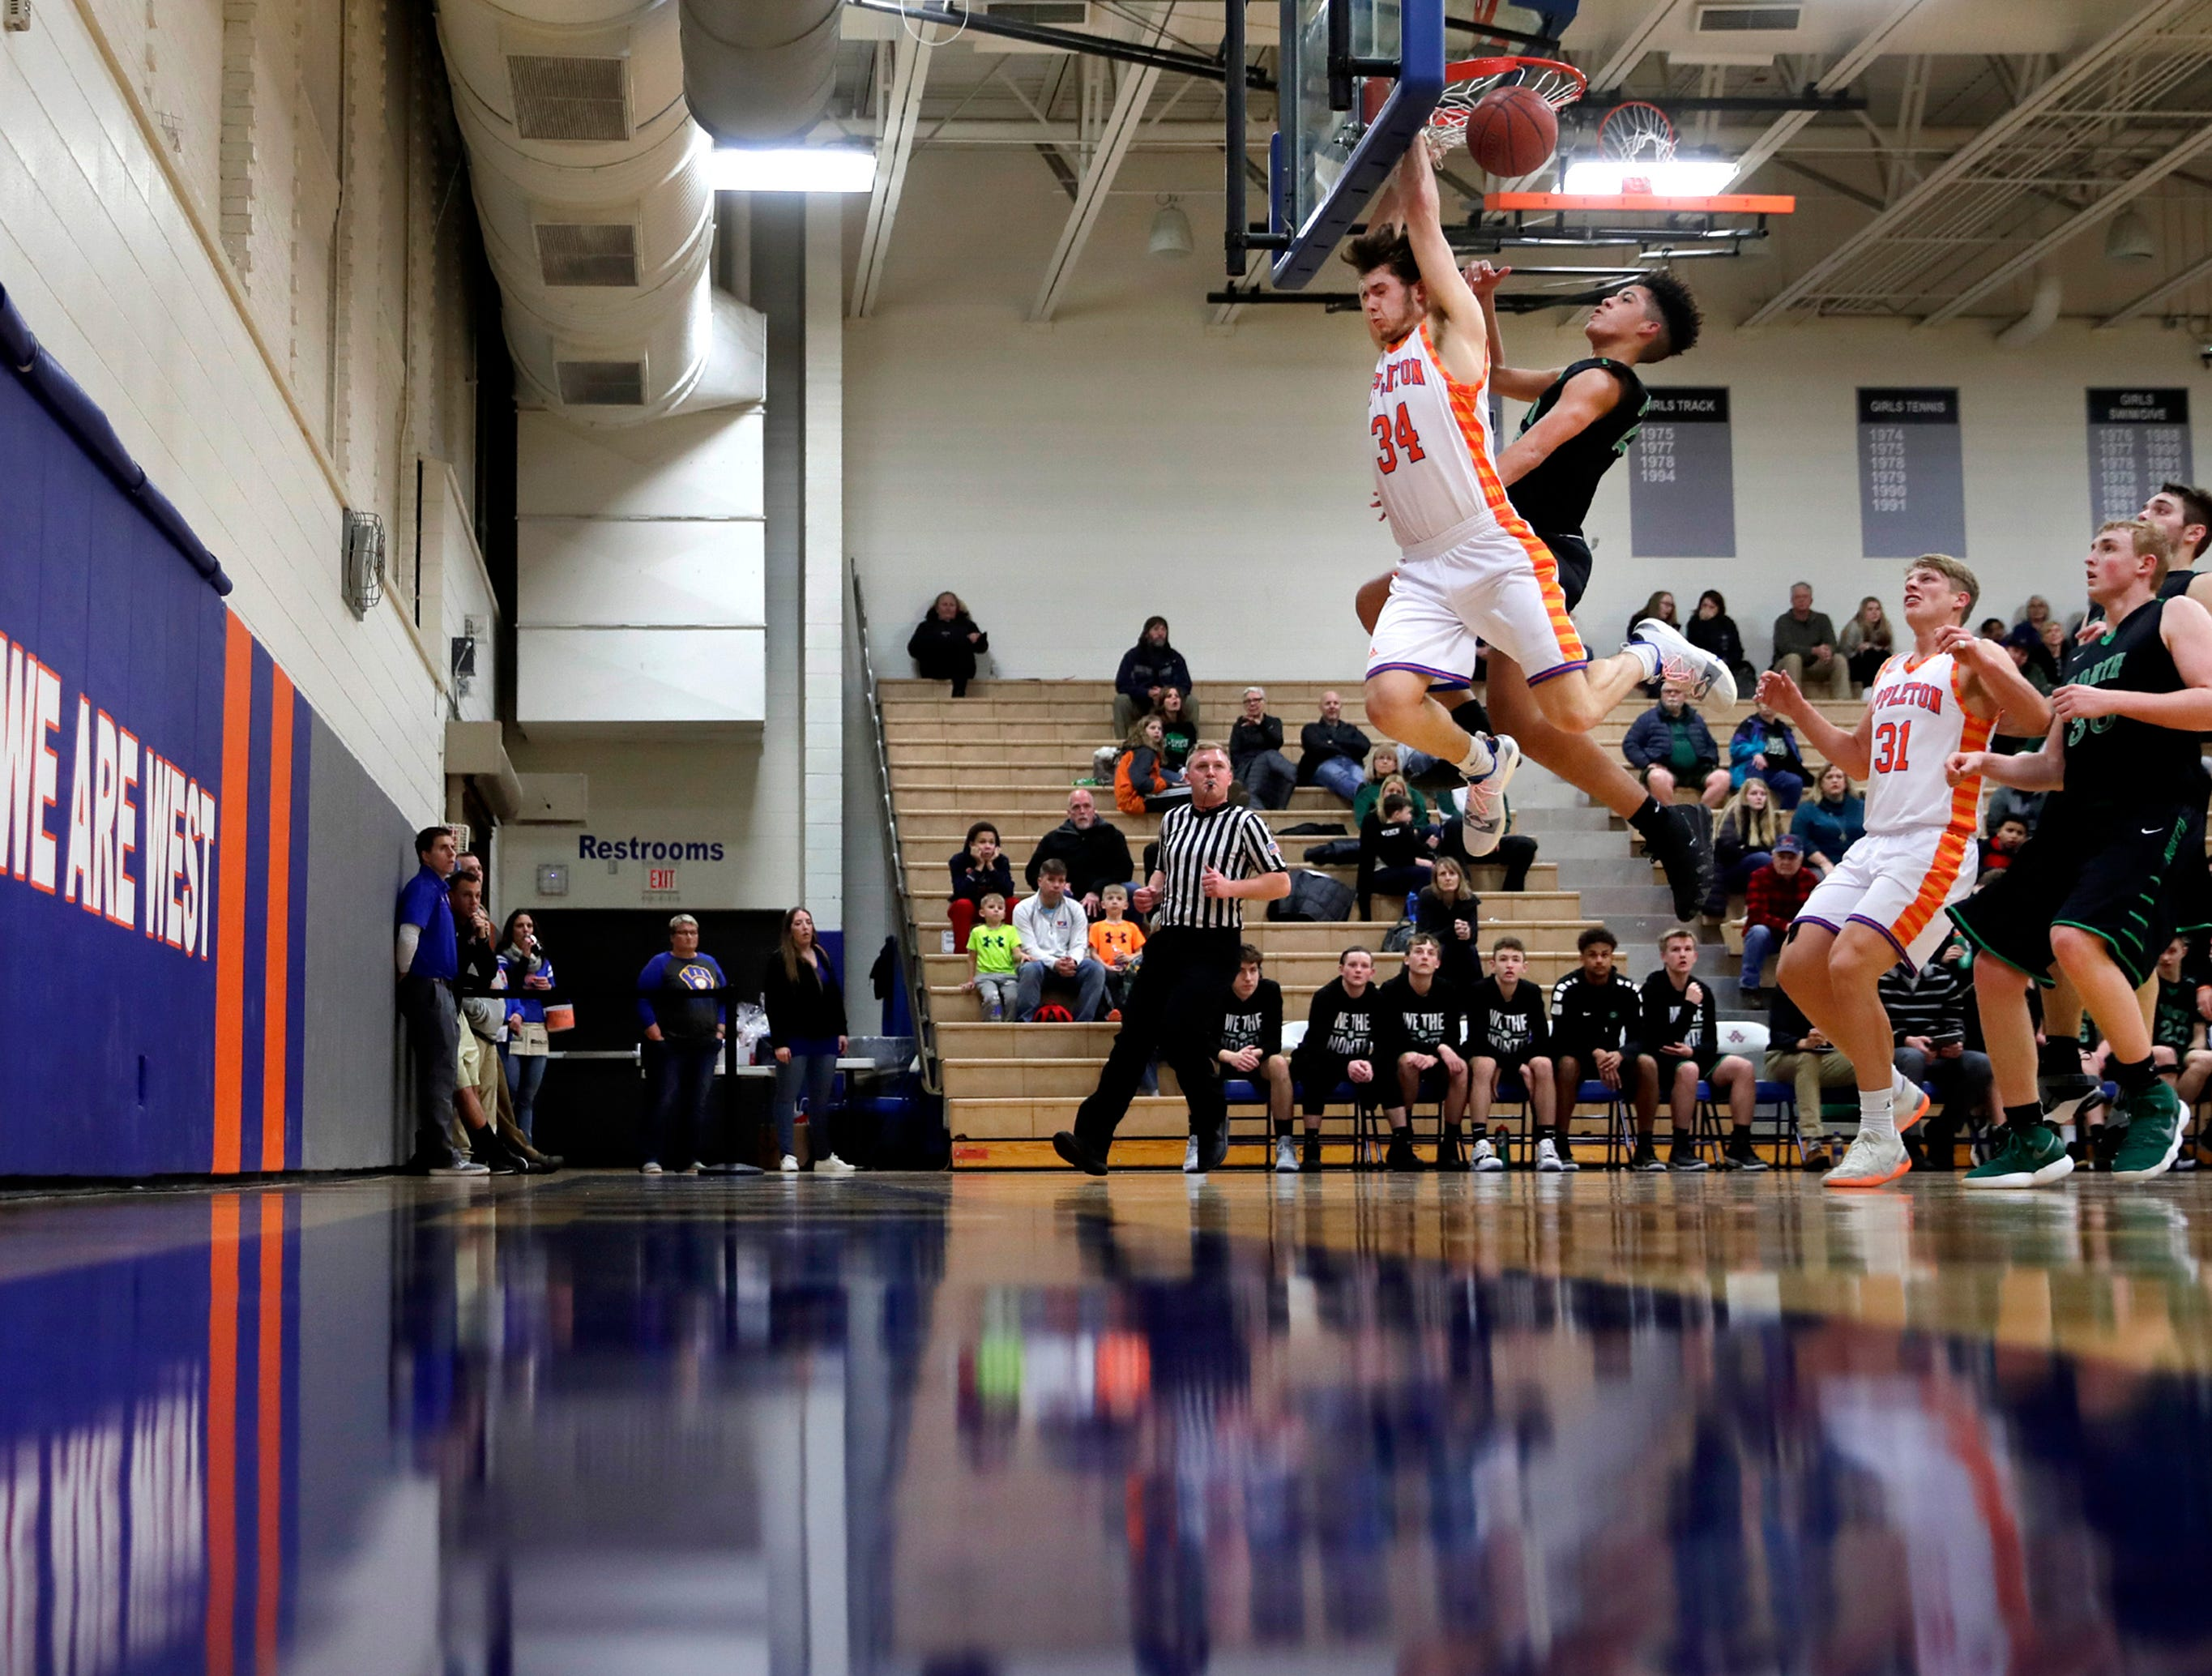 Appleton West High SchoolÕs Spencer Mellberg is fouled by Oshkosh North High SchoolÕs Jalen Keago as he goes for a dunk Tuesday, Jan. 15, 2019, at Appleton West High School in Appleton, Wis. Appleton West High School defeated Oshkosh North High School 72-63.Danny Damiani/USA TODAY NETWORK-Wisconsin